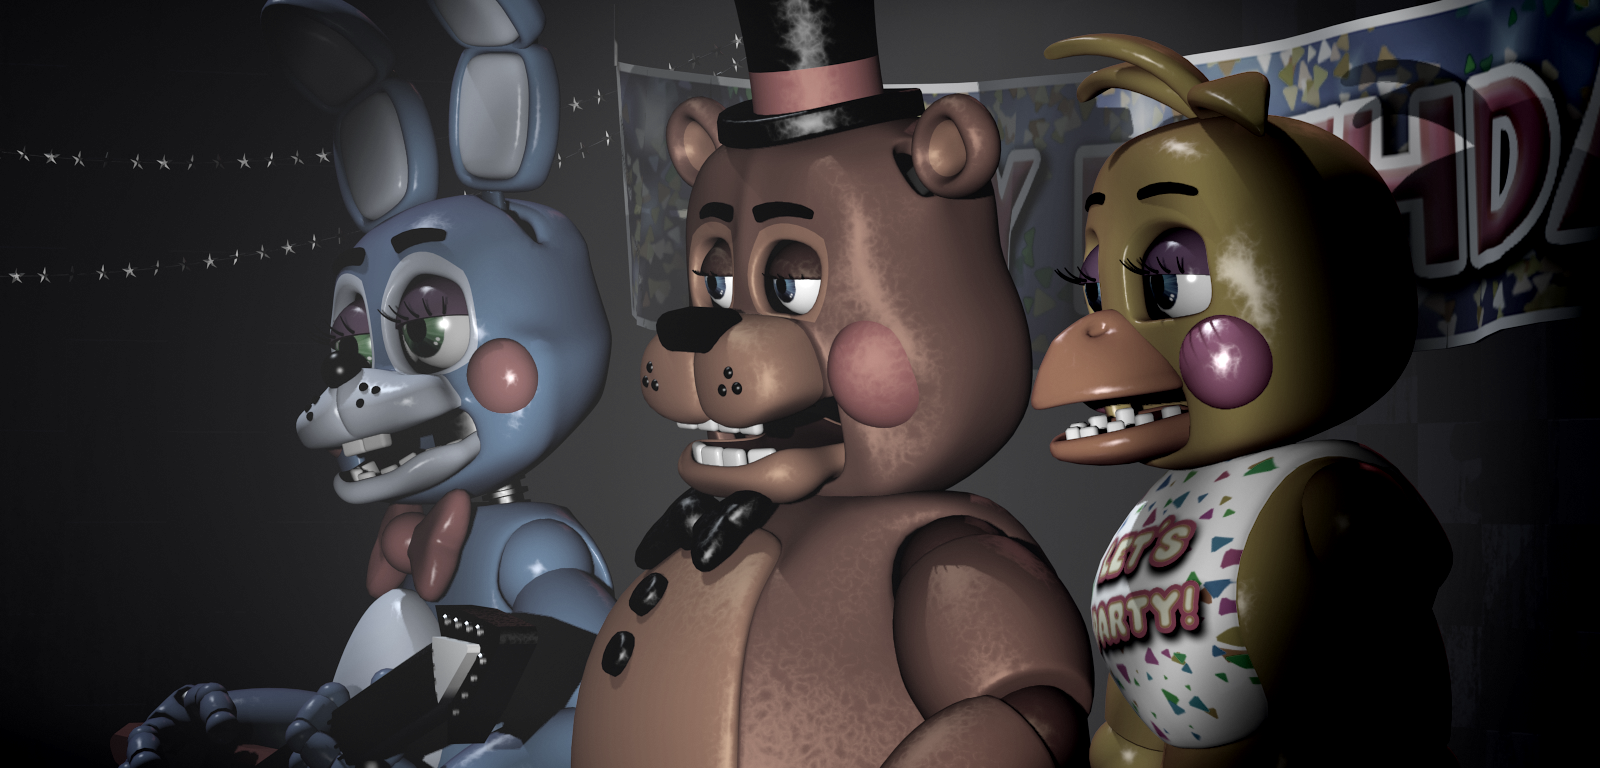 Besides from the 1st game, Which of these are the names of the Toy Animatronics in the 2nd game?